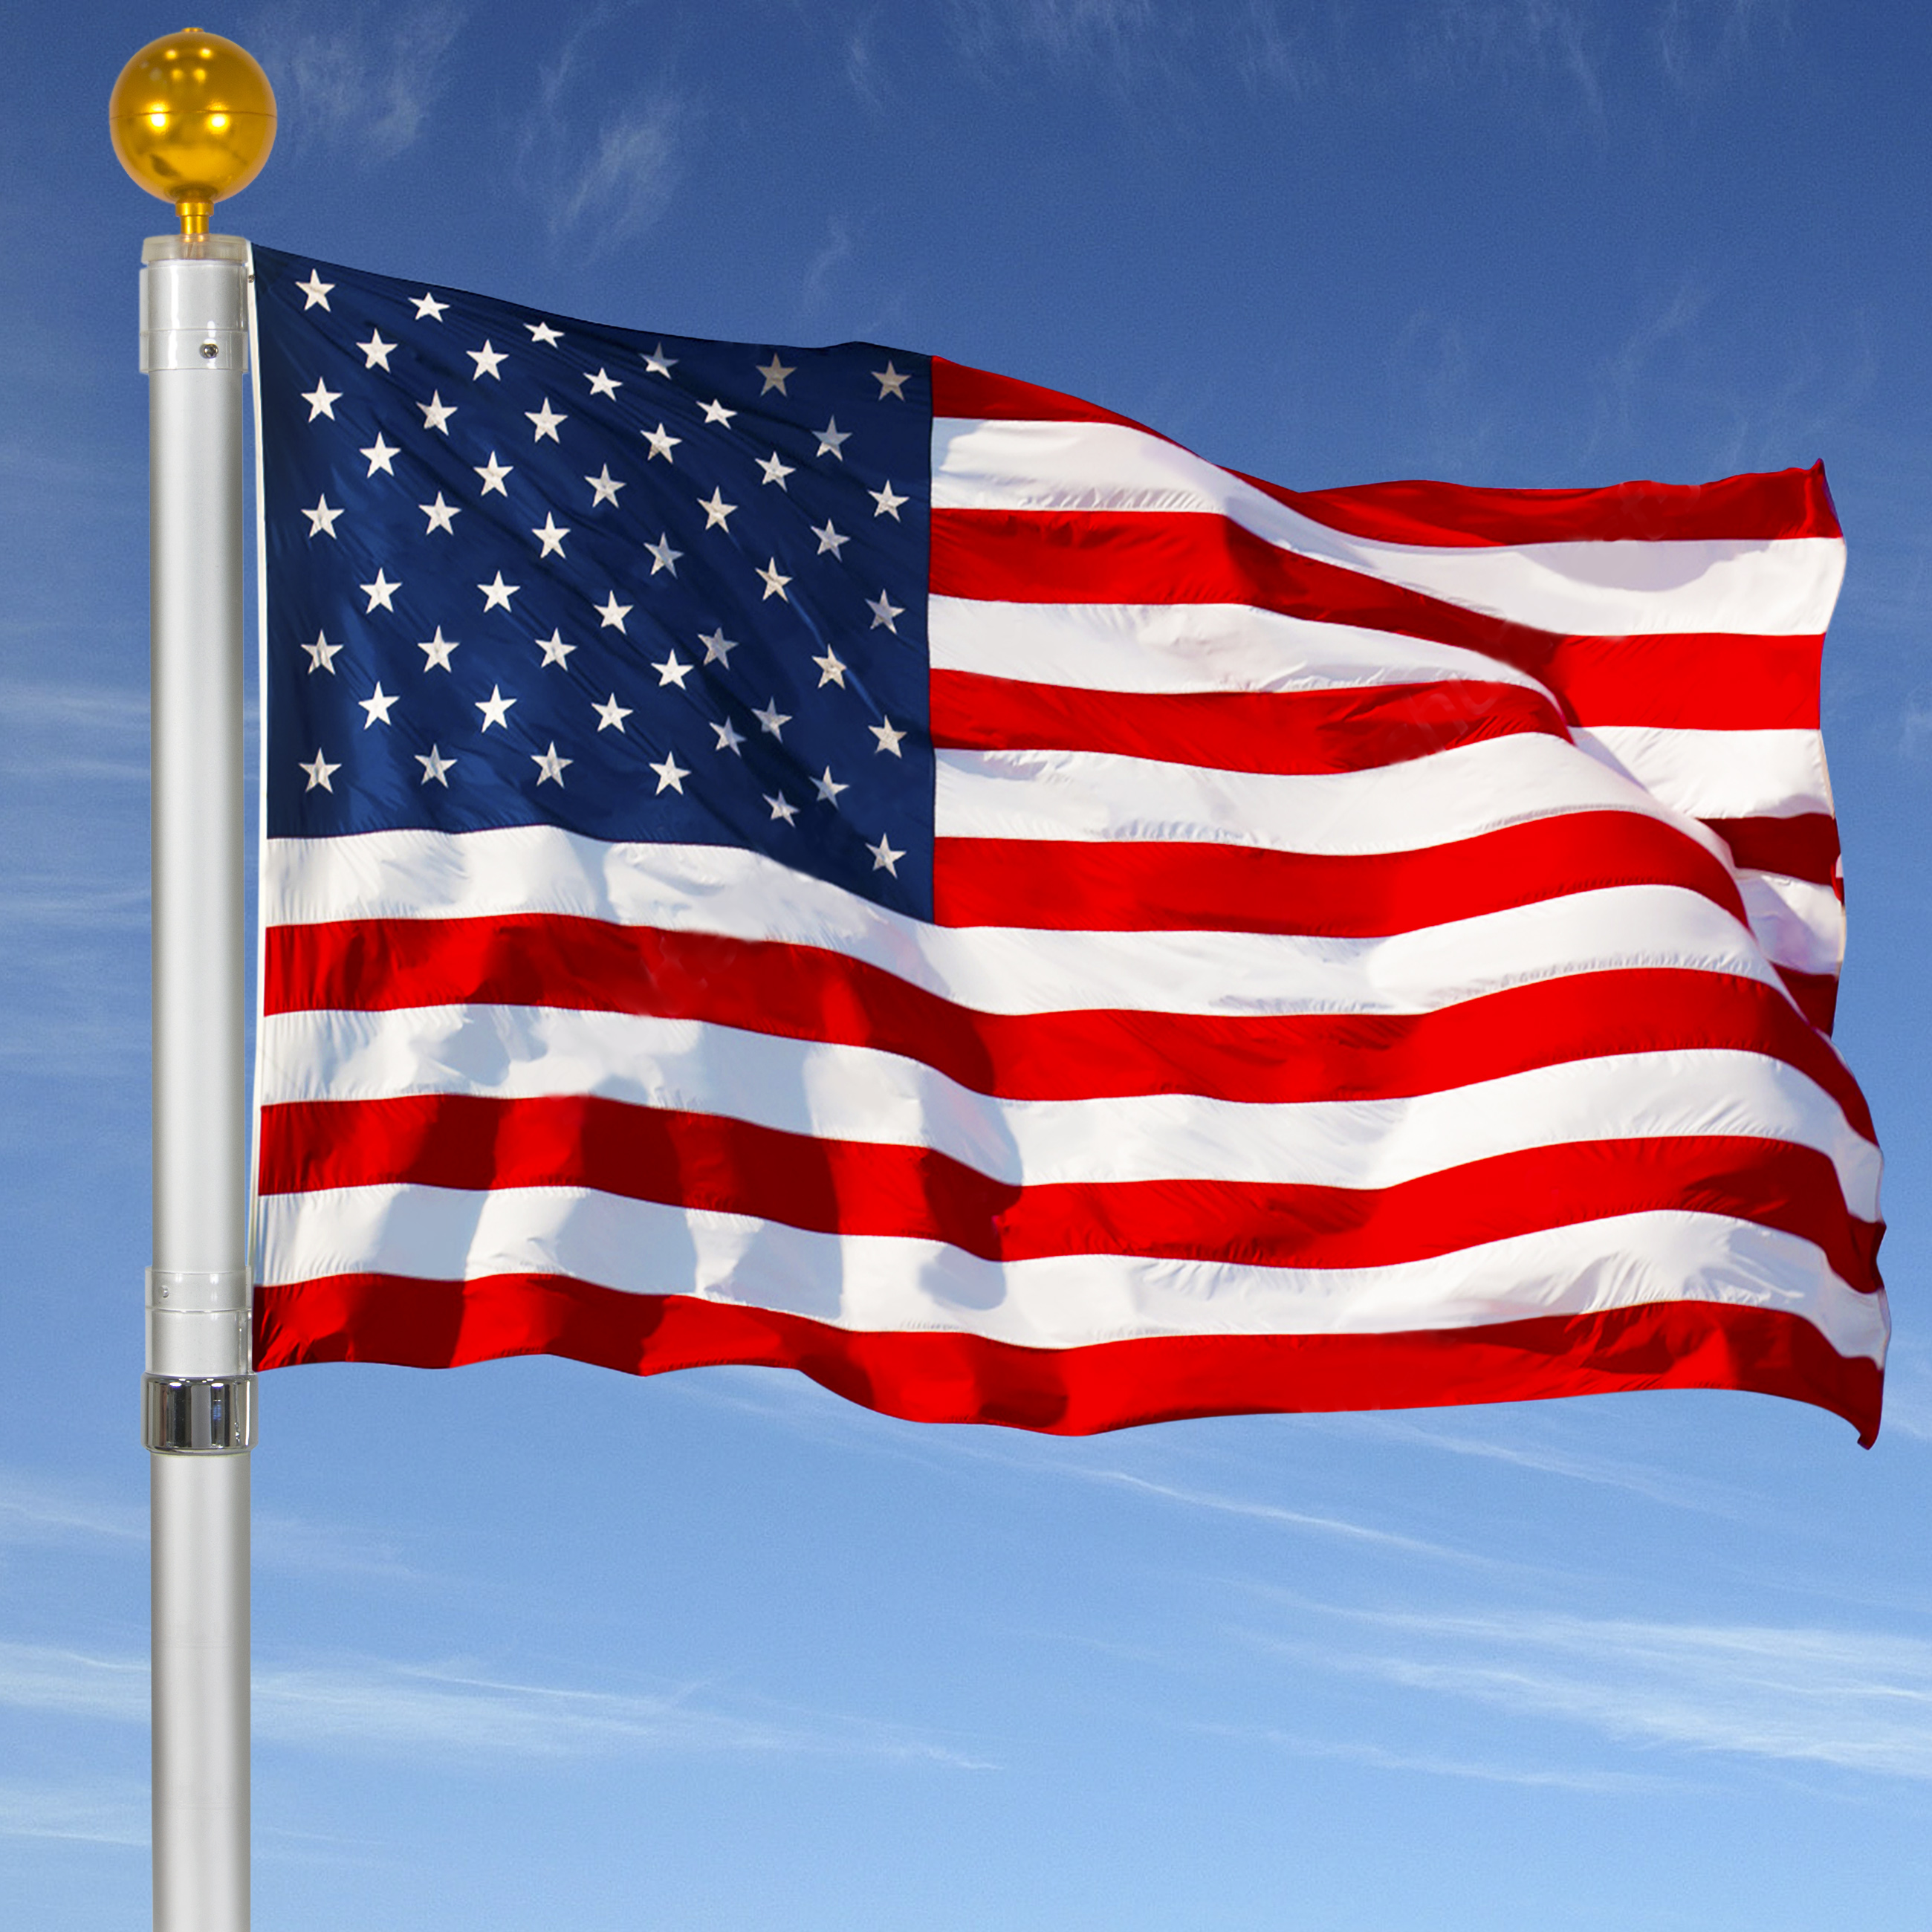 Flagpole Telescopic 16' Aluminum Flag Pole Outdoor Garden Solid Construction new